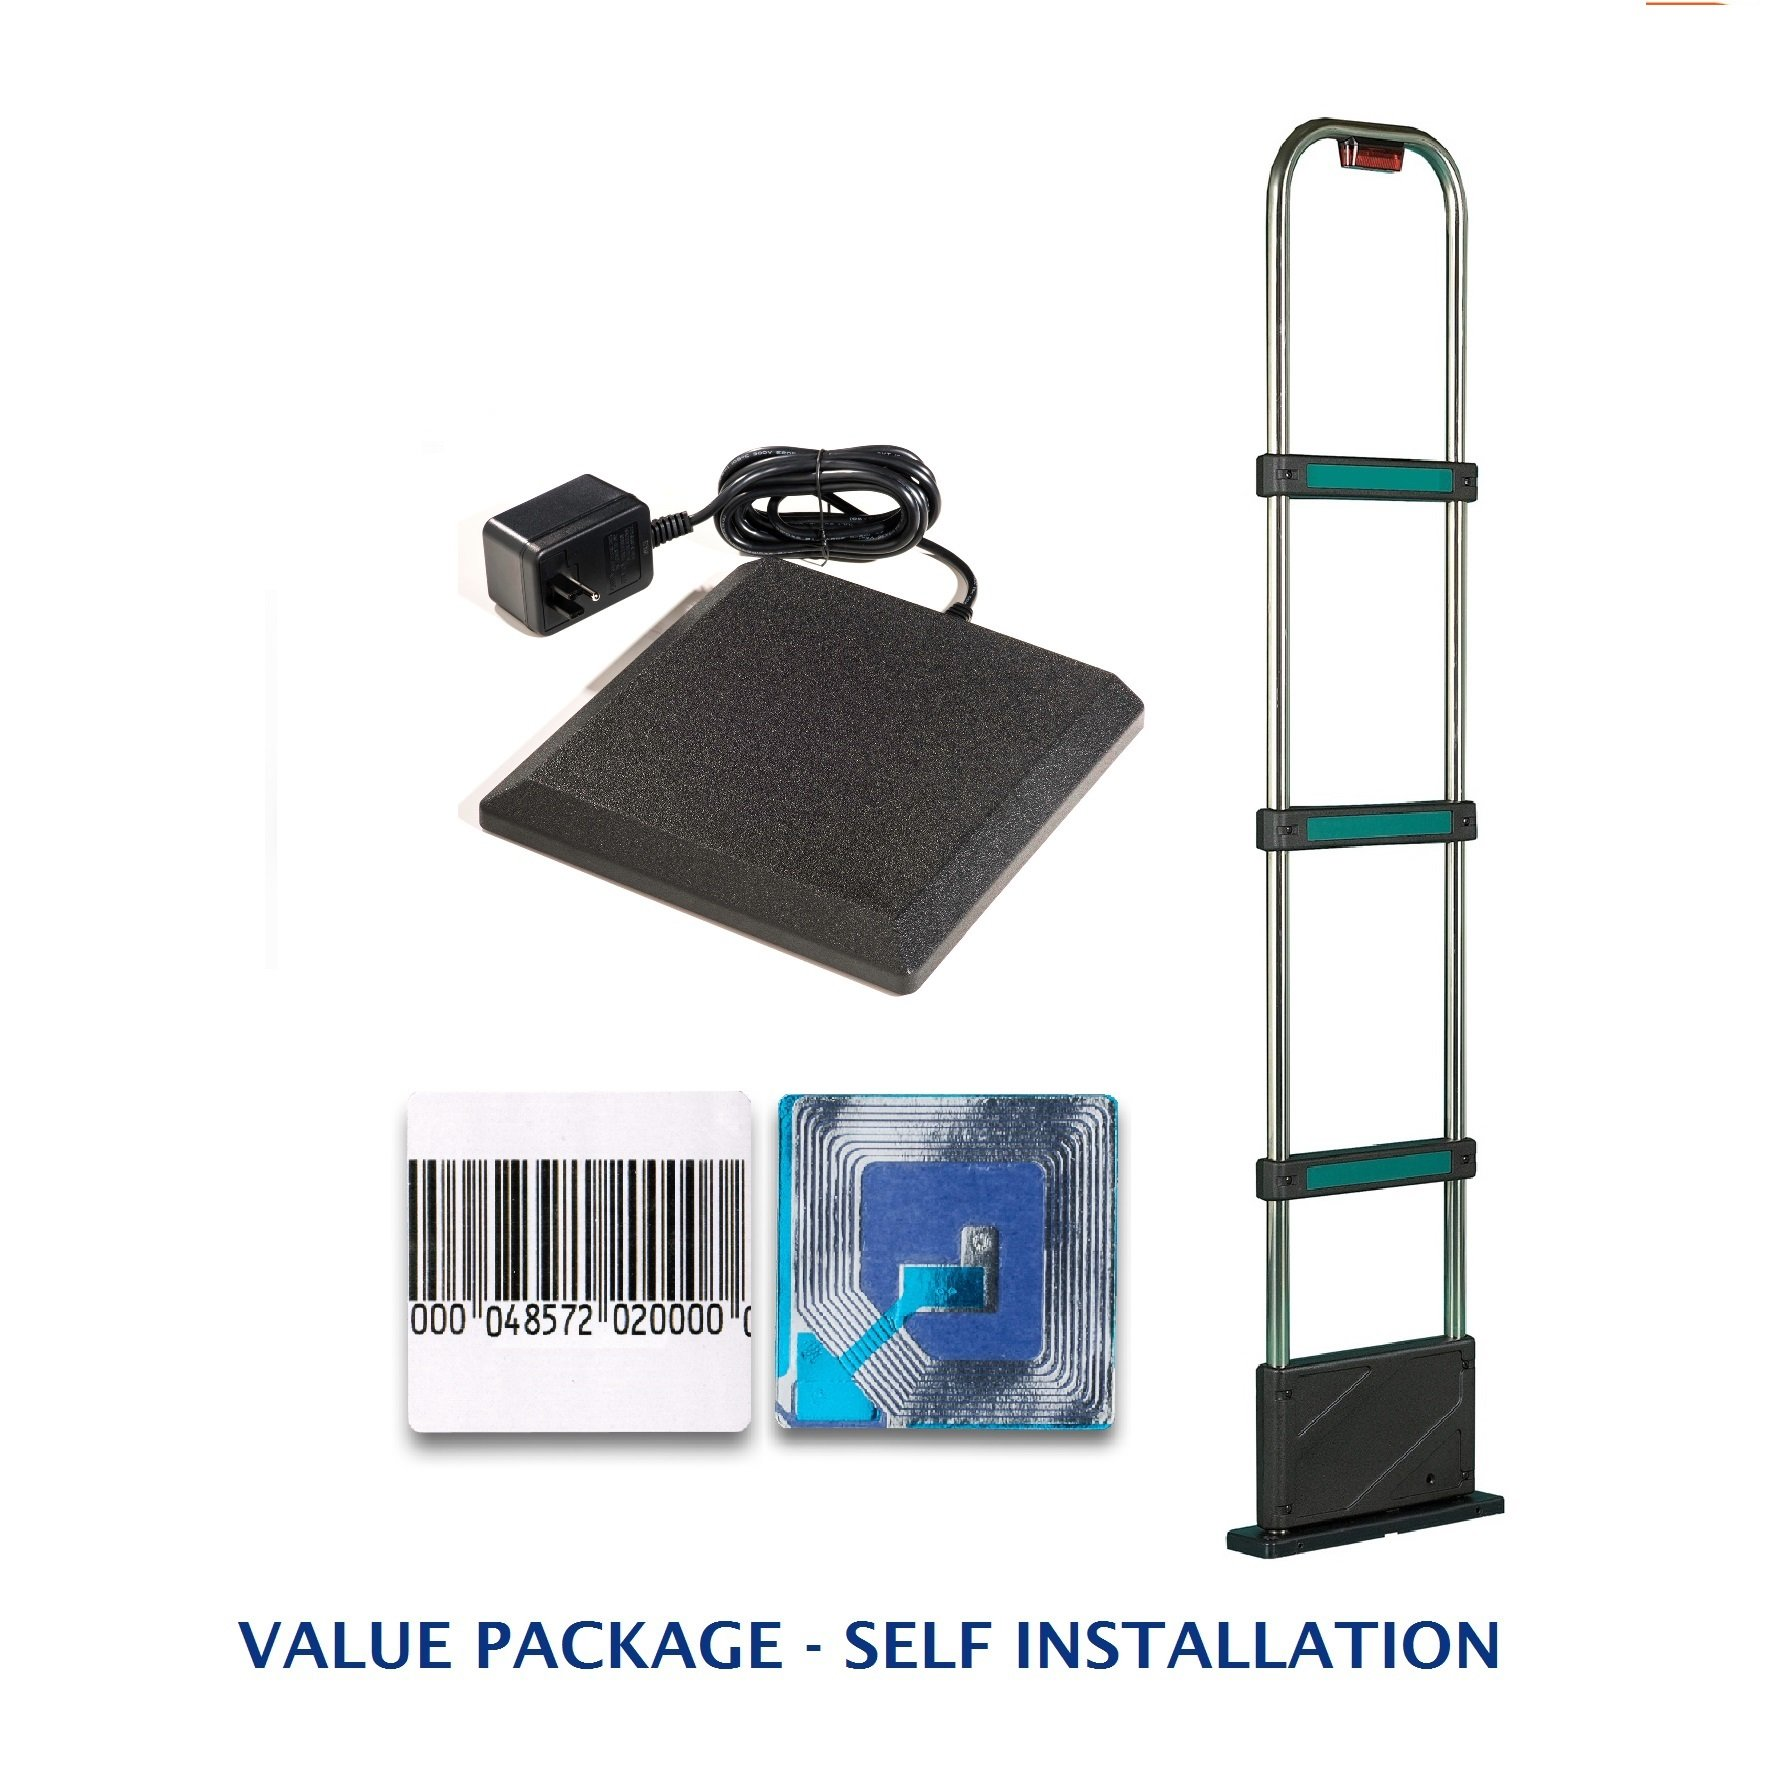 Retail Security Value Pack Including Tower + Deactivator + Soft Labels - EAS Loss Prevention - MADE IN USA by Sensornation (Image #2)